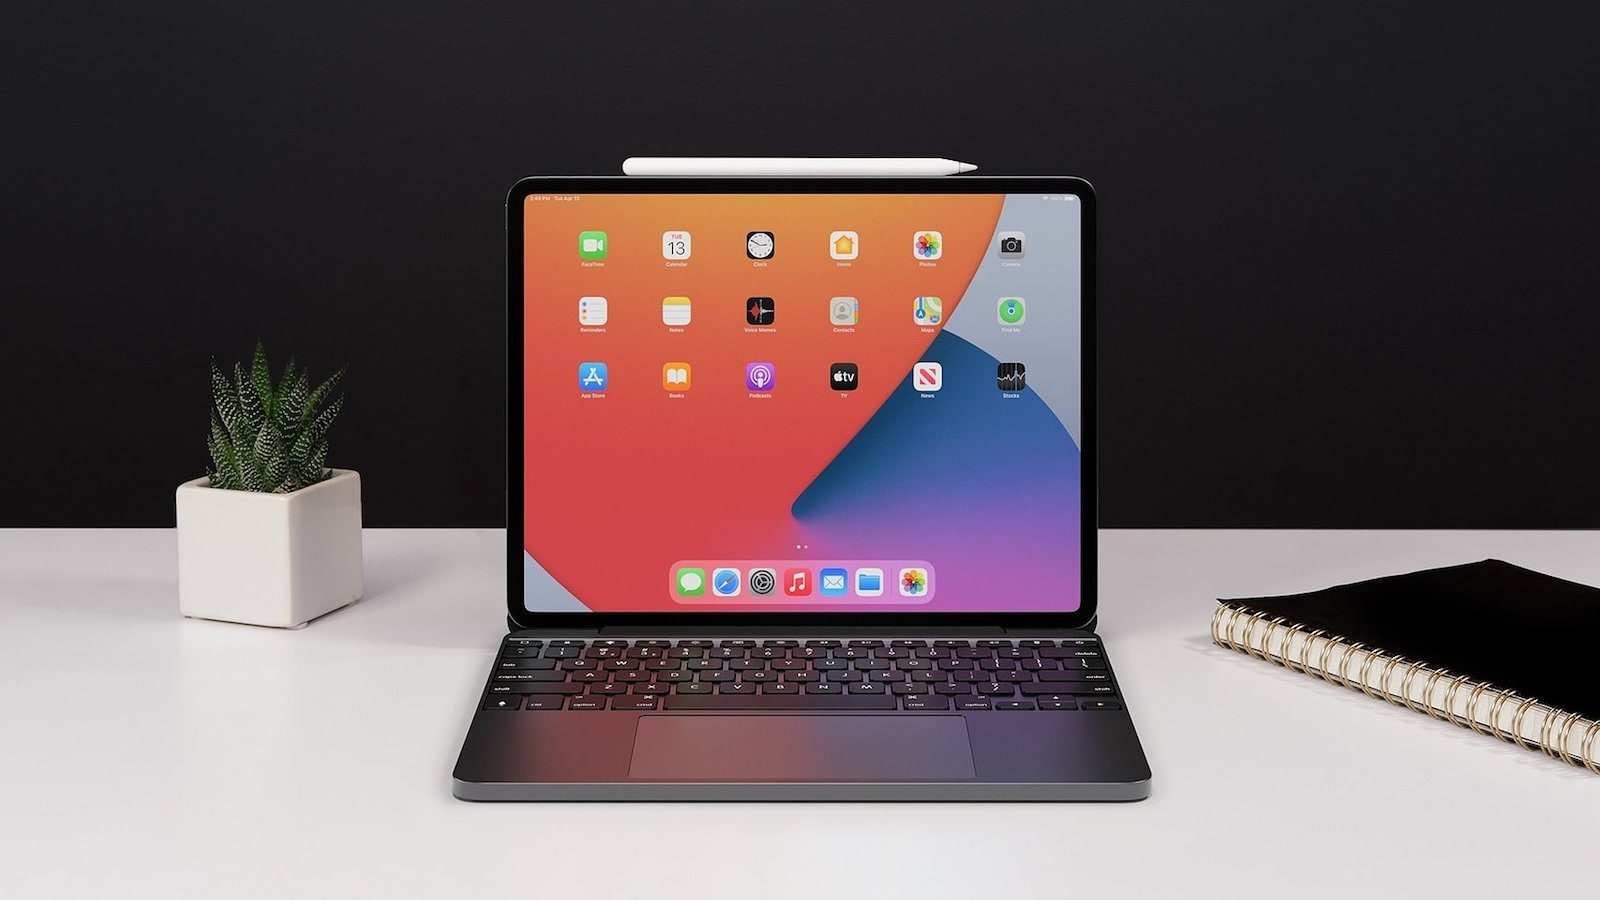 Brydge 12.9 MAX+ iPad Pro keyboard and trackpad creates a laptop-like experience